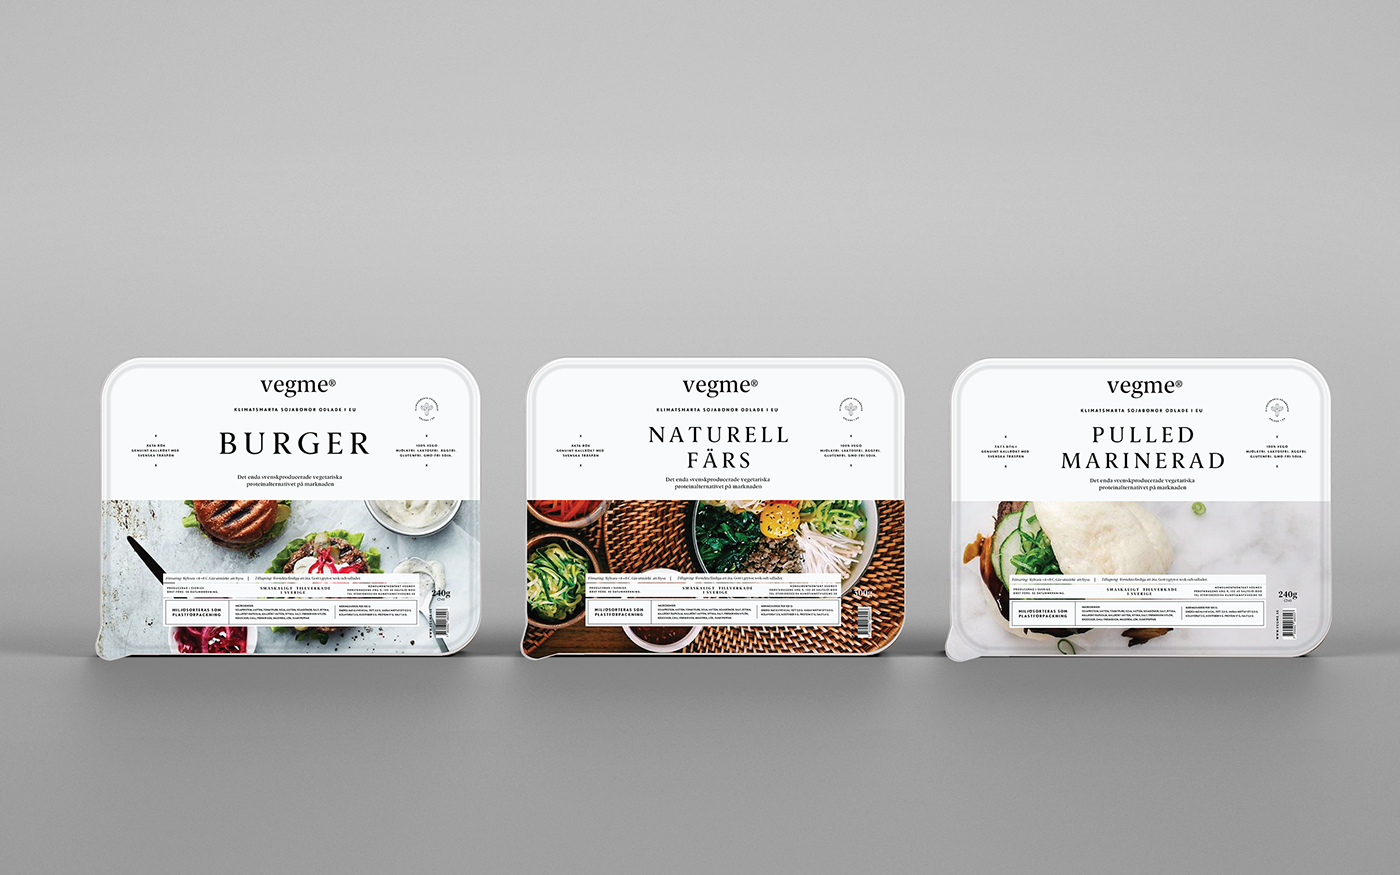 graphic design  Packaging Food  ILLUSTRATION  symbol Logotype graphic typography   branding